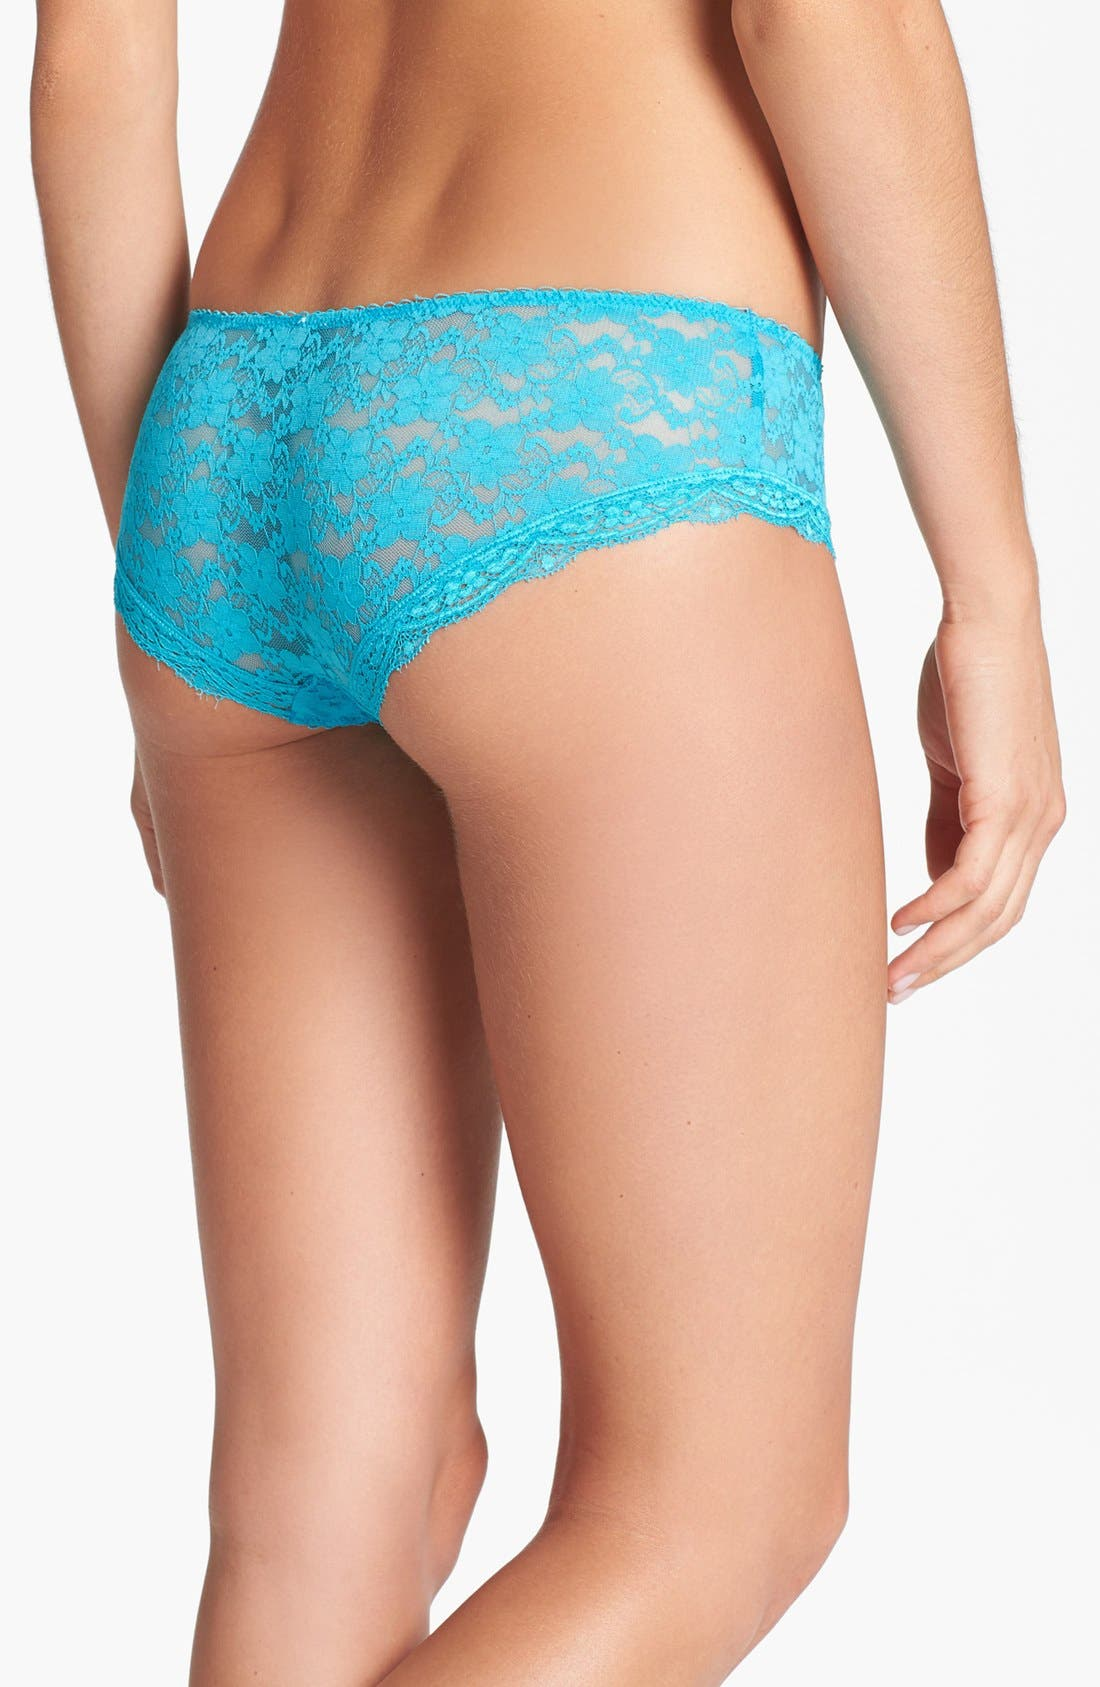 Alternate Image 2  - Free People Lace Hipster Briefs (3 for $33)